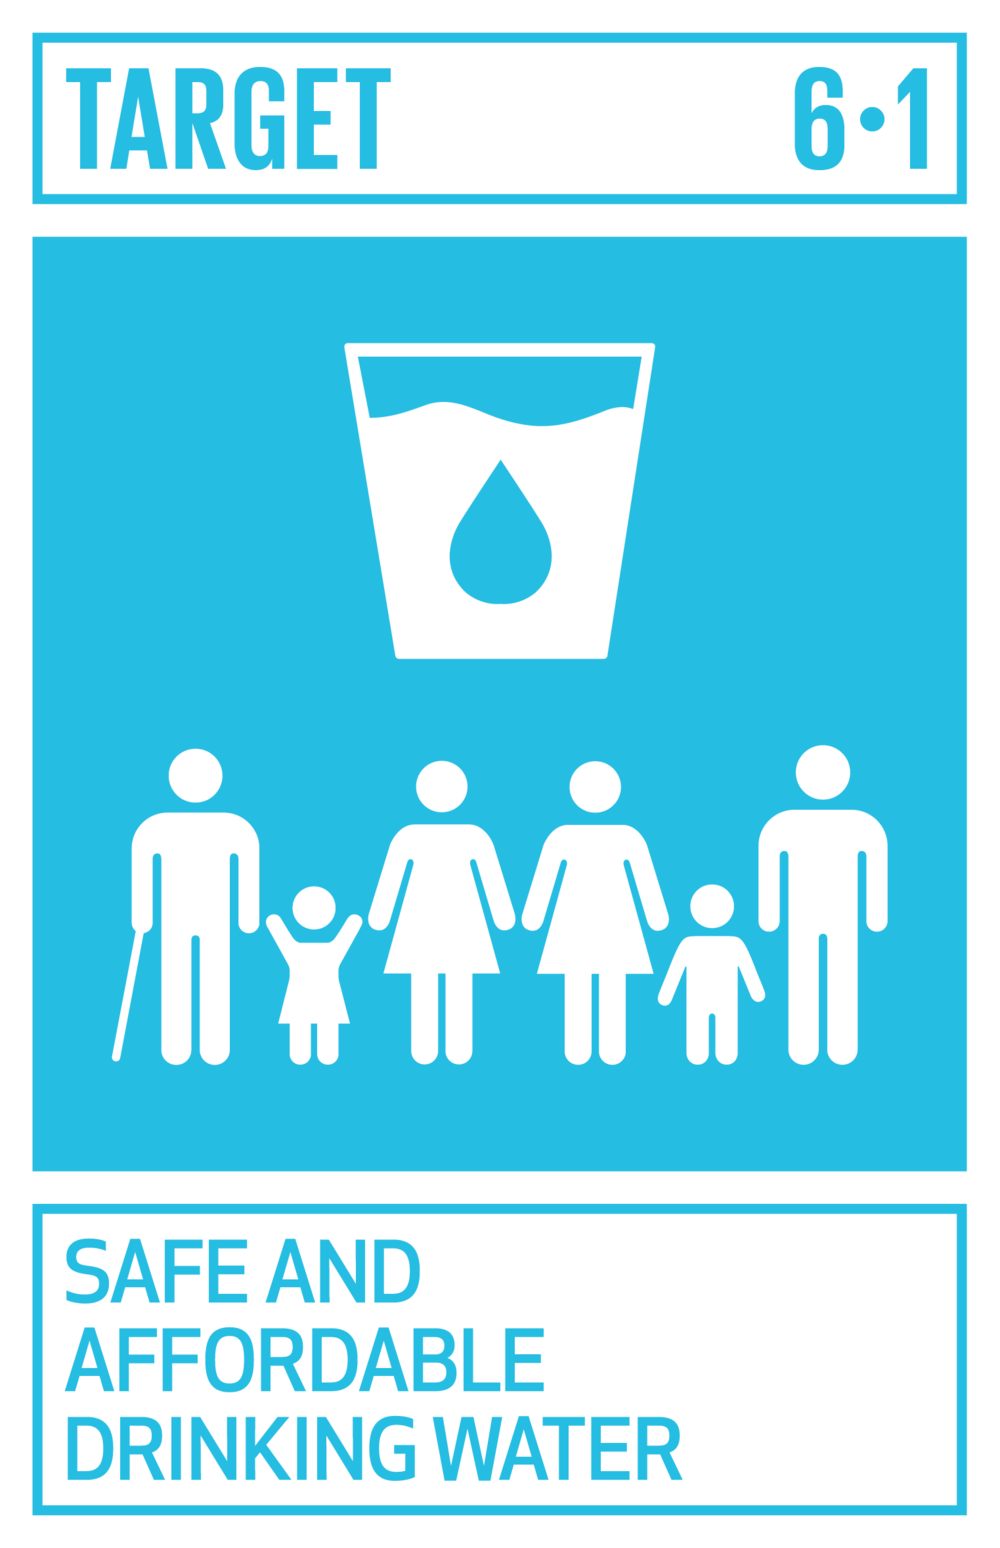 By 2030, achieve universal and equitable access to safe and affordable drinking water for all.   INDICATOR    6.1.1  Proportion of population using safely managed drinking water services